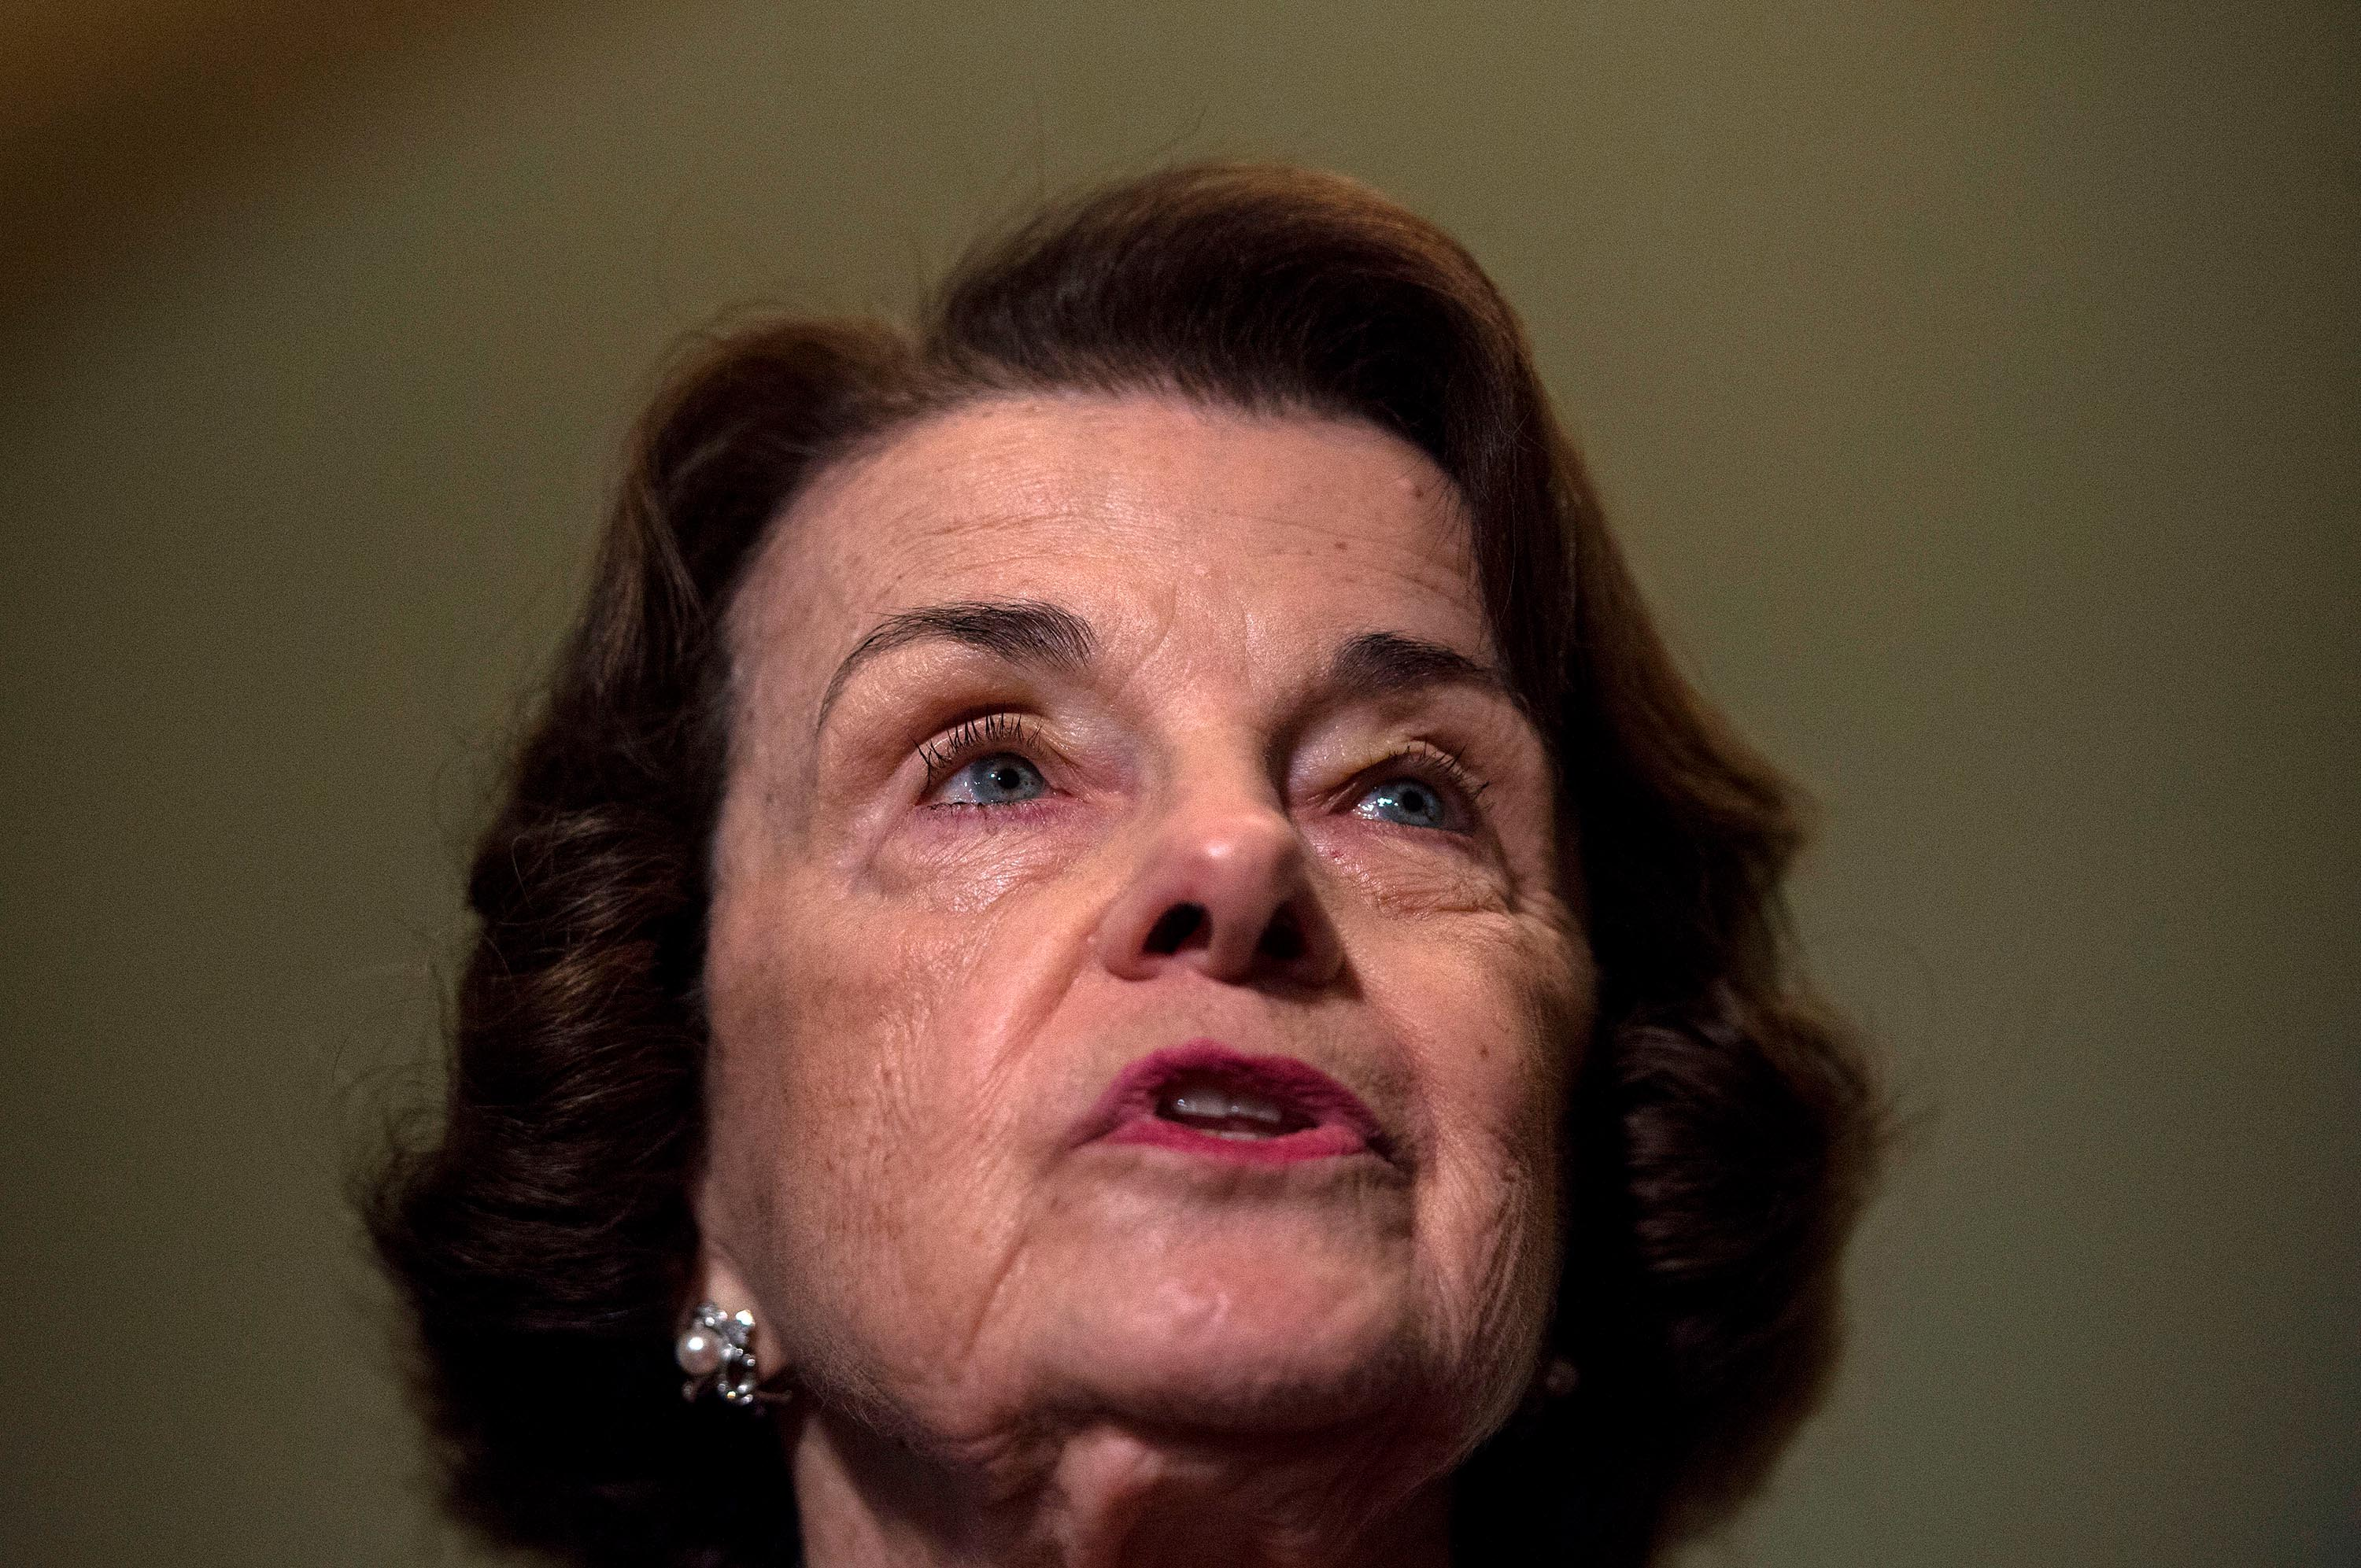 Top Democrats refuse to stand by Feinstein after she praised GOP handling of Barrett hearings